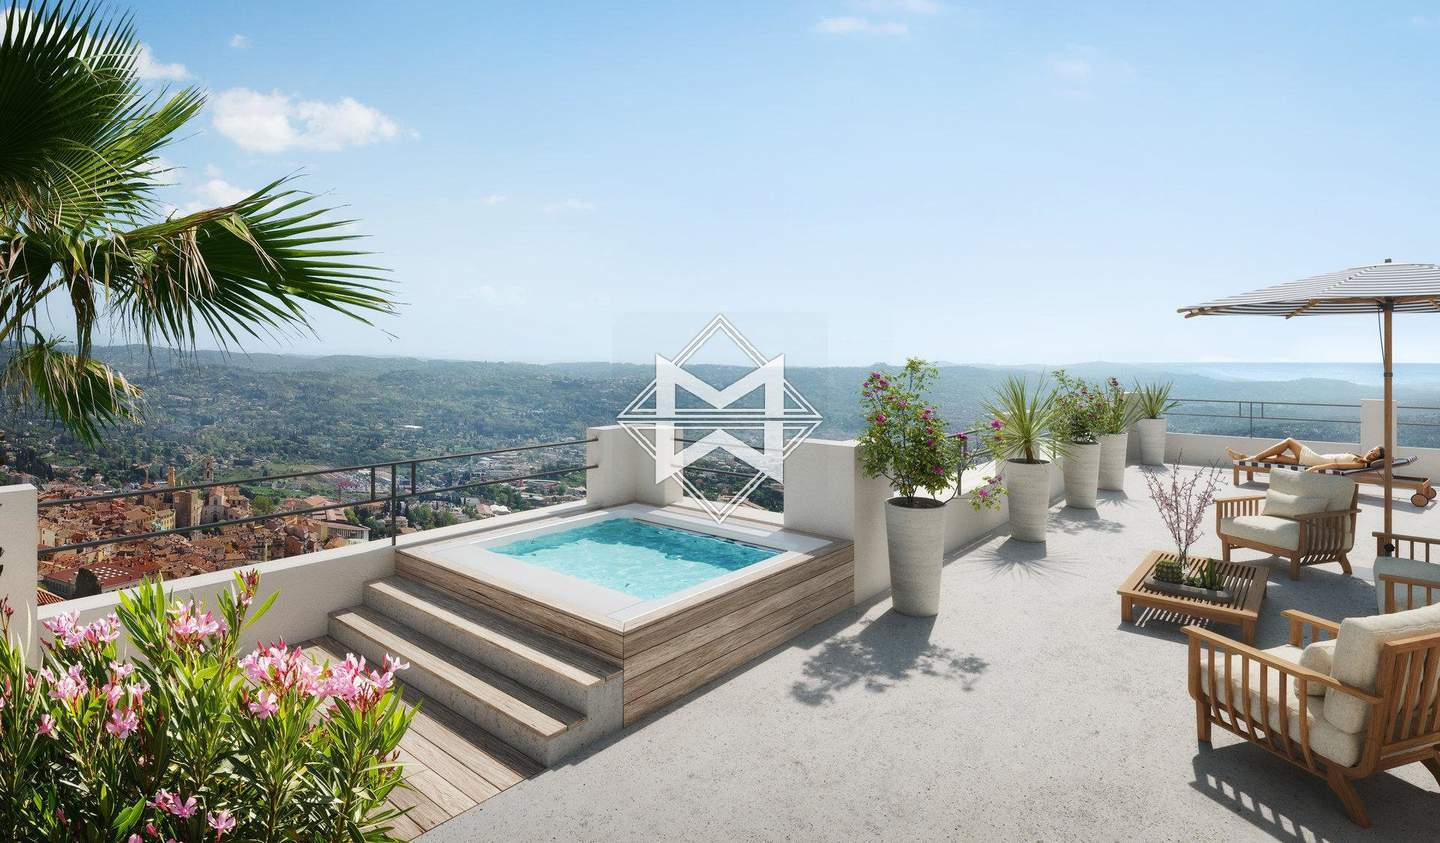 Apartment with terrace and pool Grasse